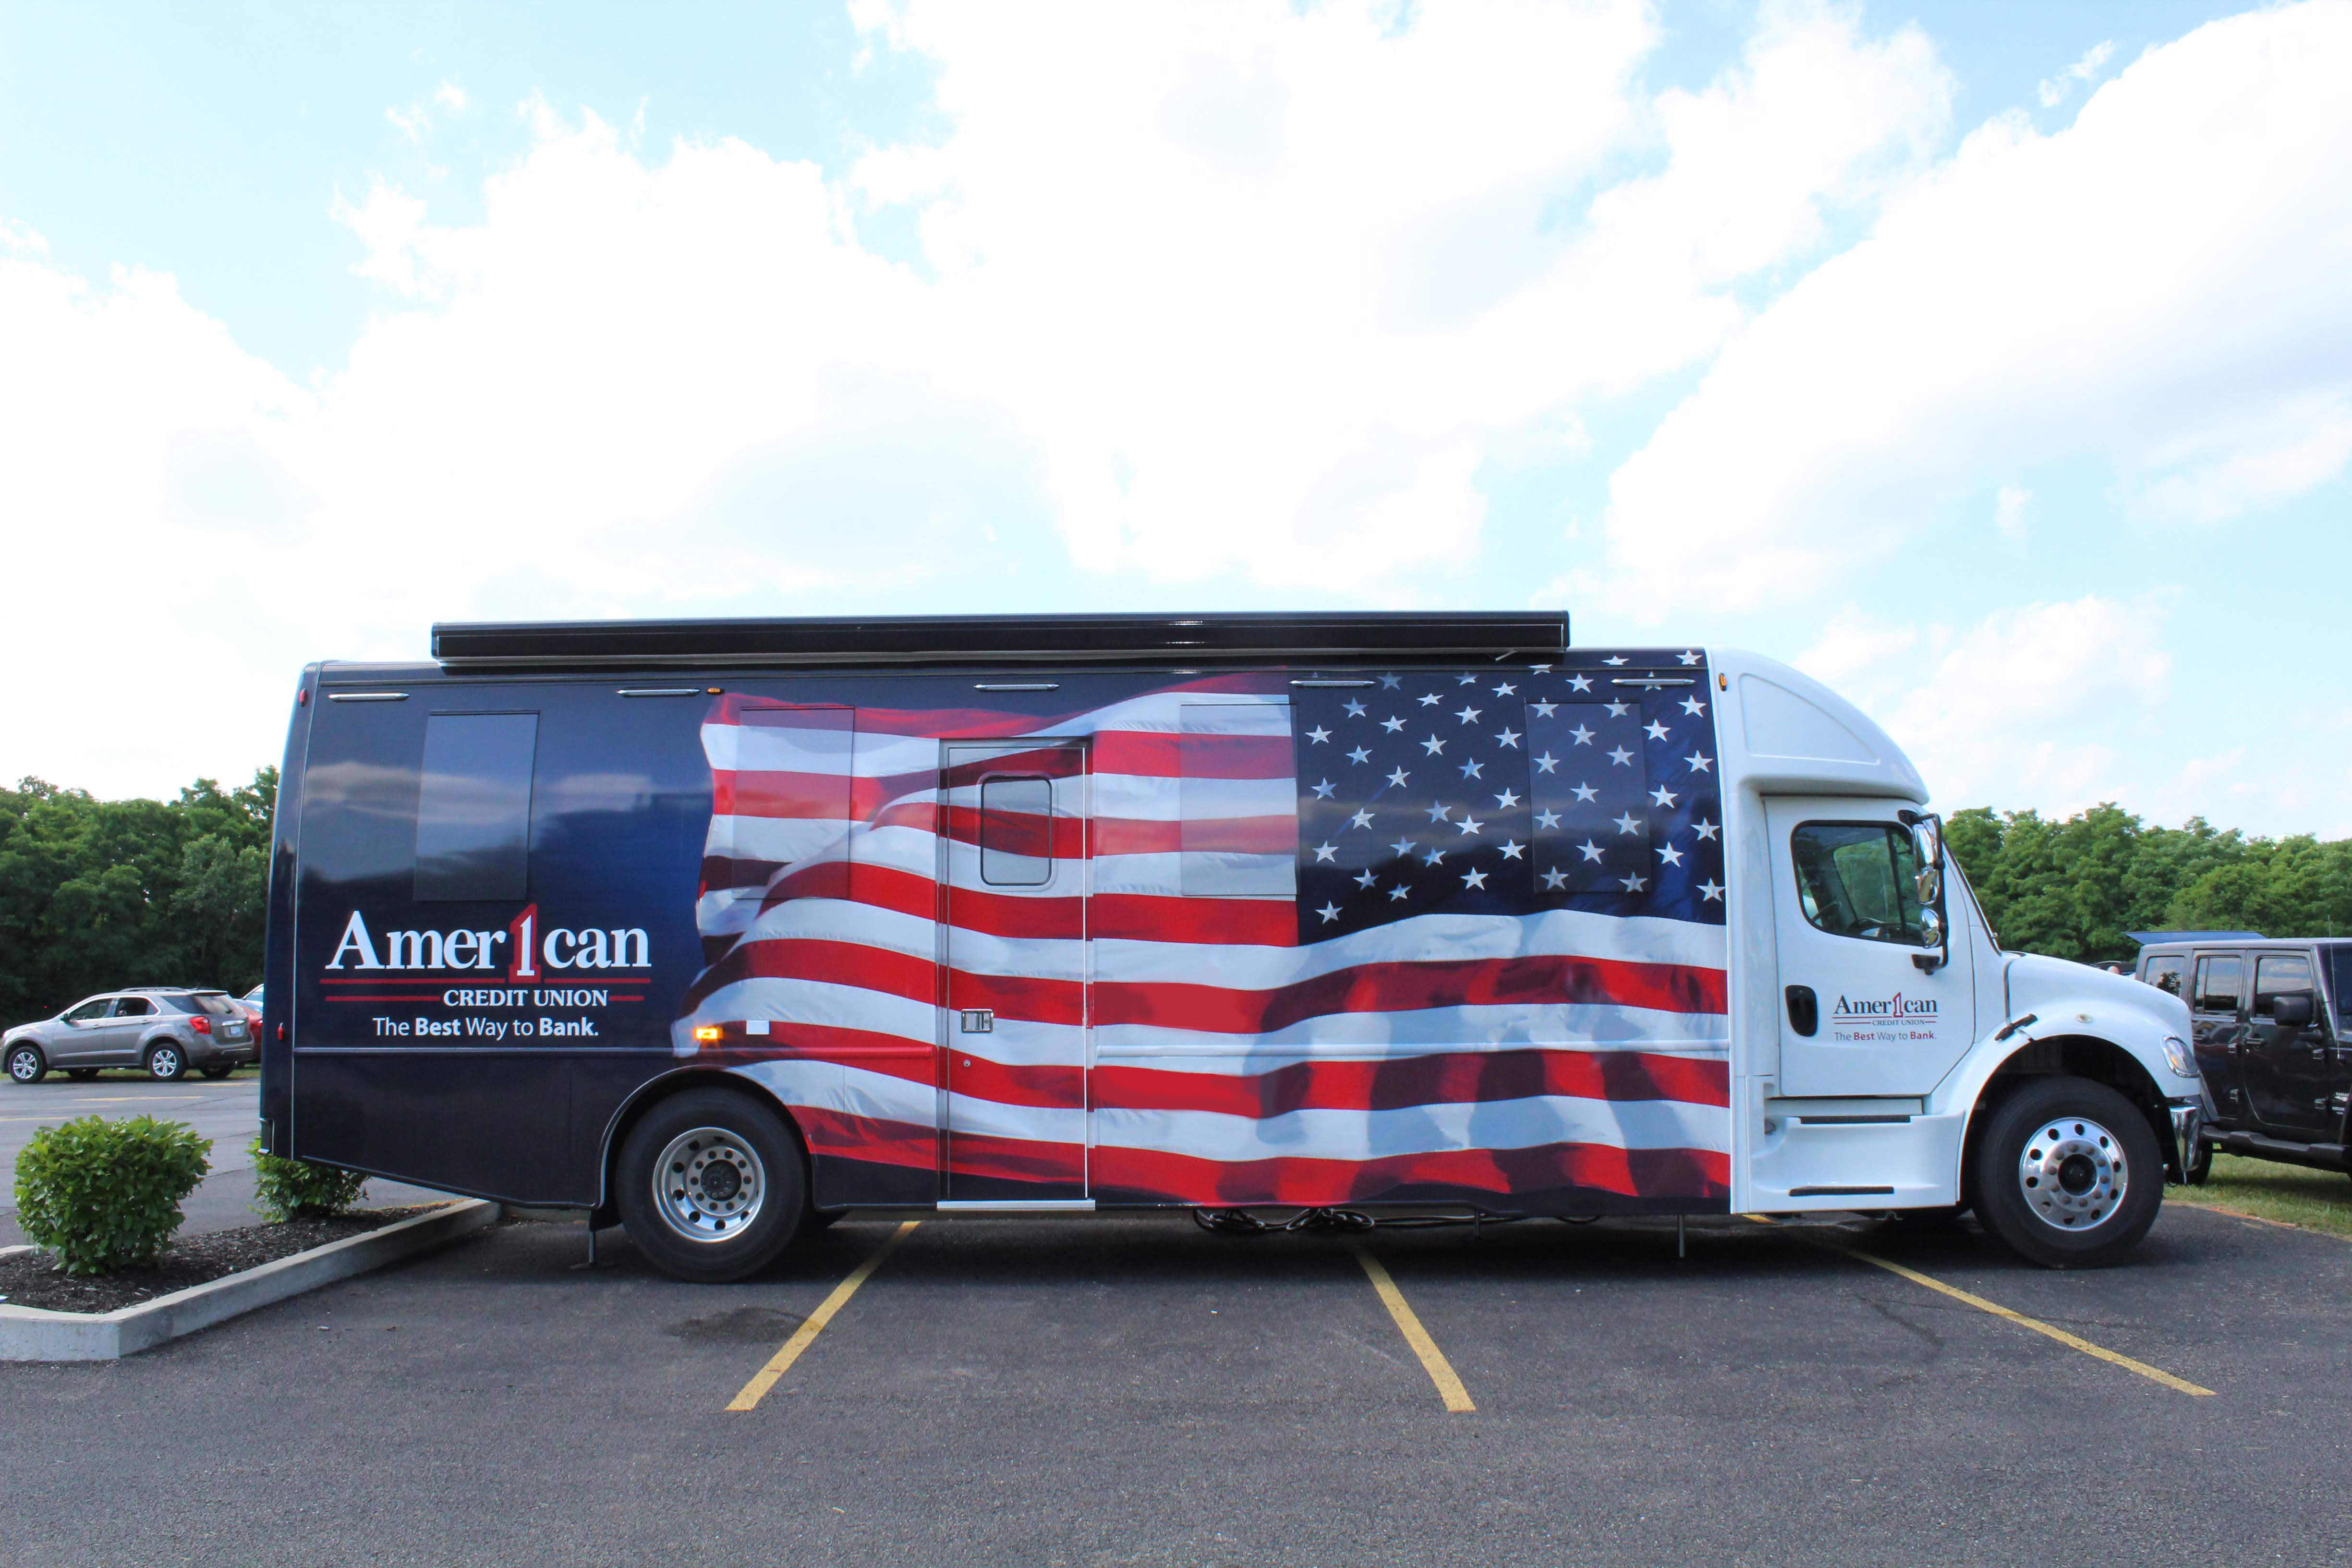 American 1 Credit Union Mobile Branch